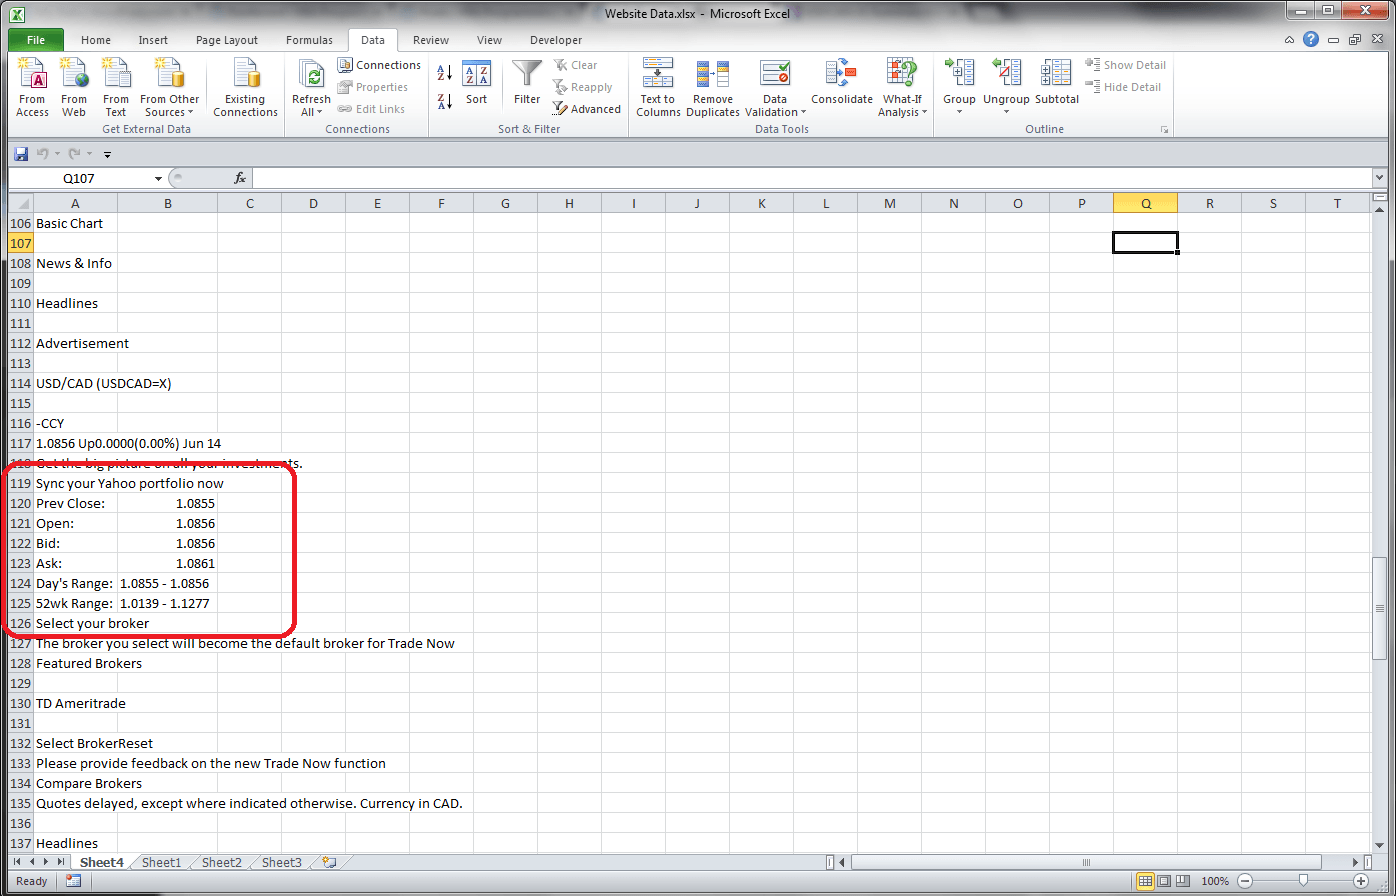 Excel Vba Retrieving Data From A Website Using A Query